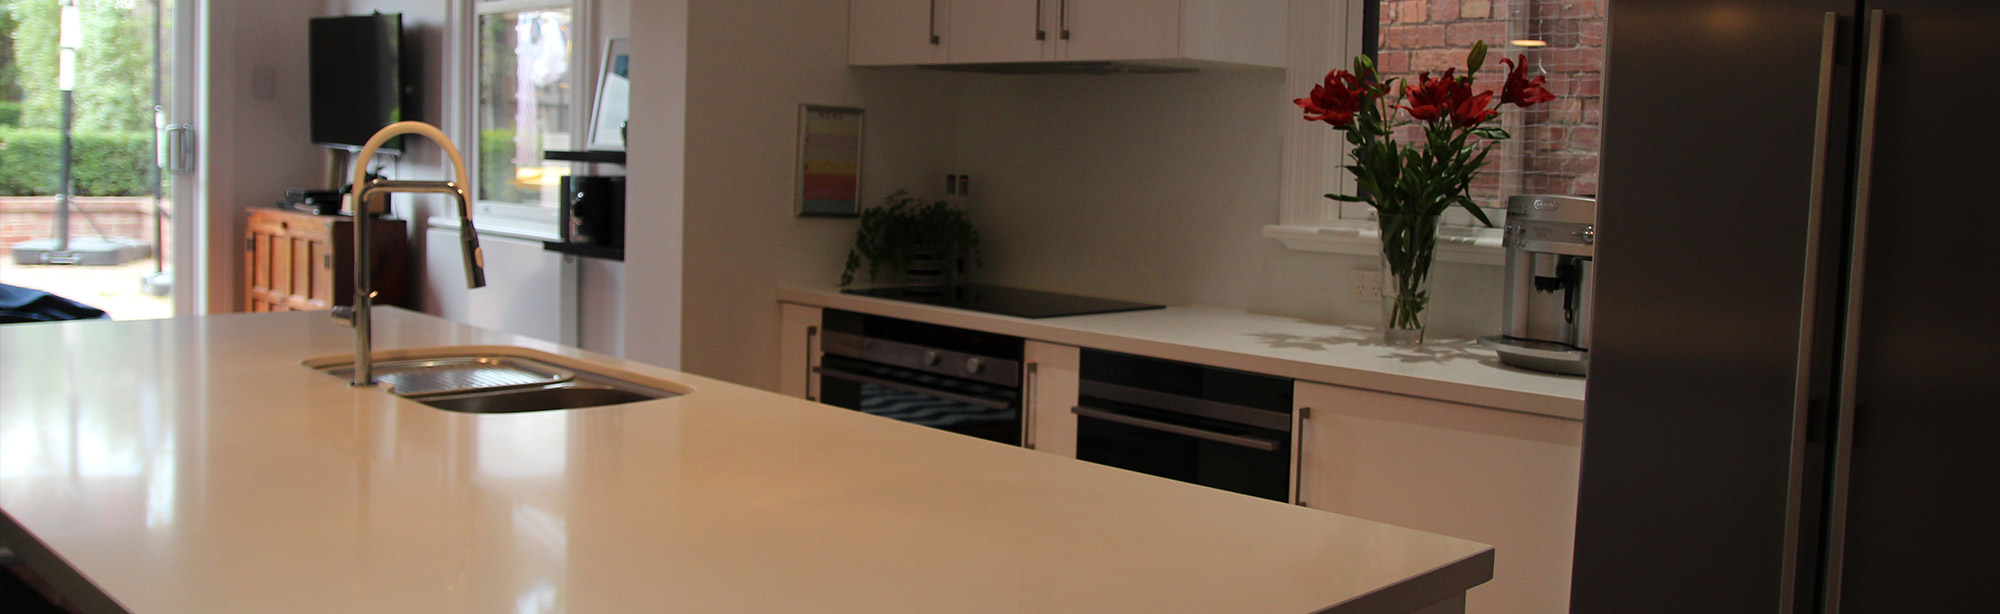 kitchen design companies melbourne kitchen designers melbourne kitchens melbourne kitchens 563